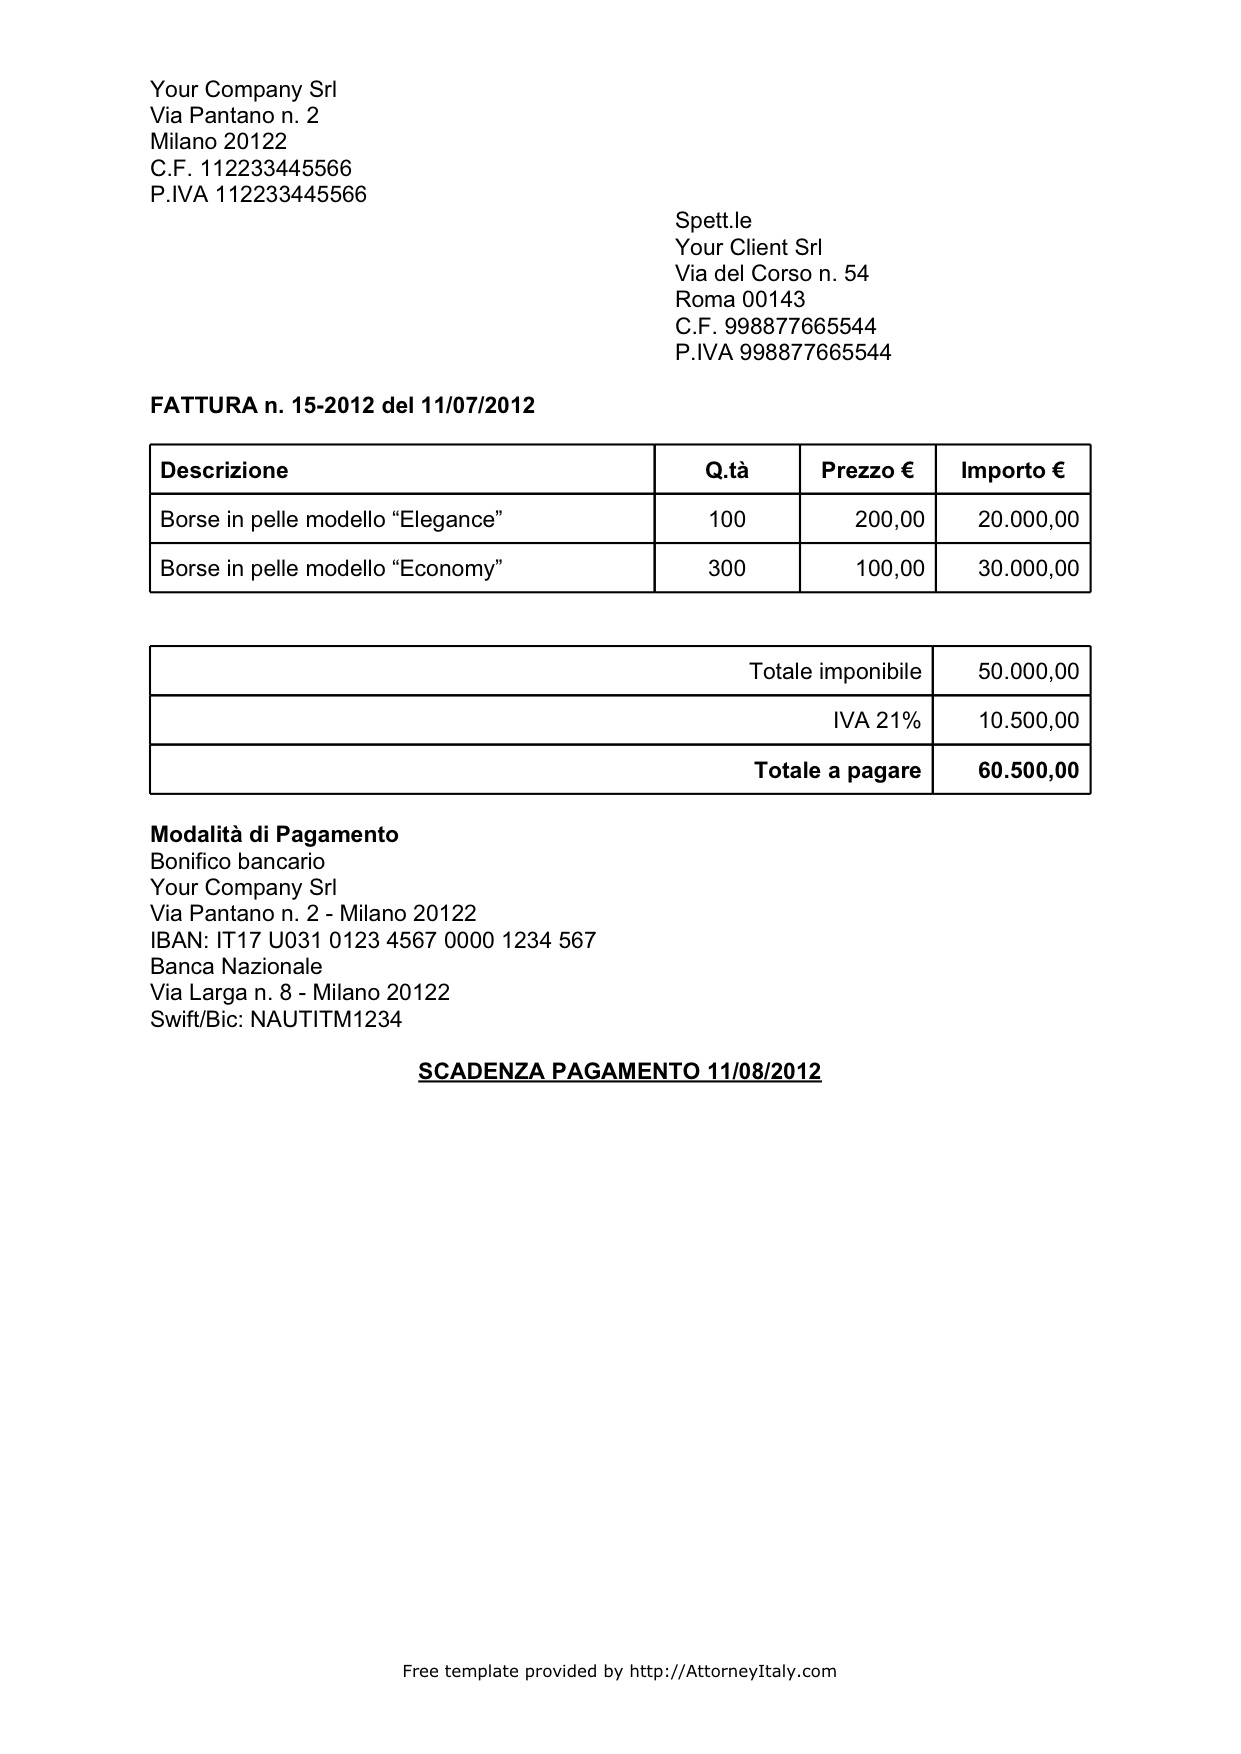 Italian Invoice Template - Law firm invoice template word for service business